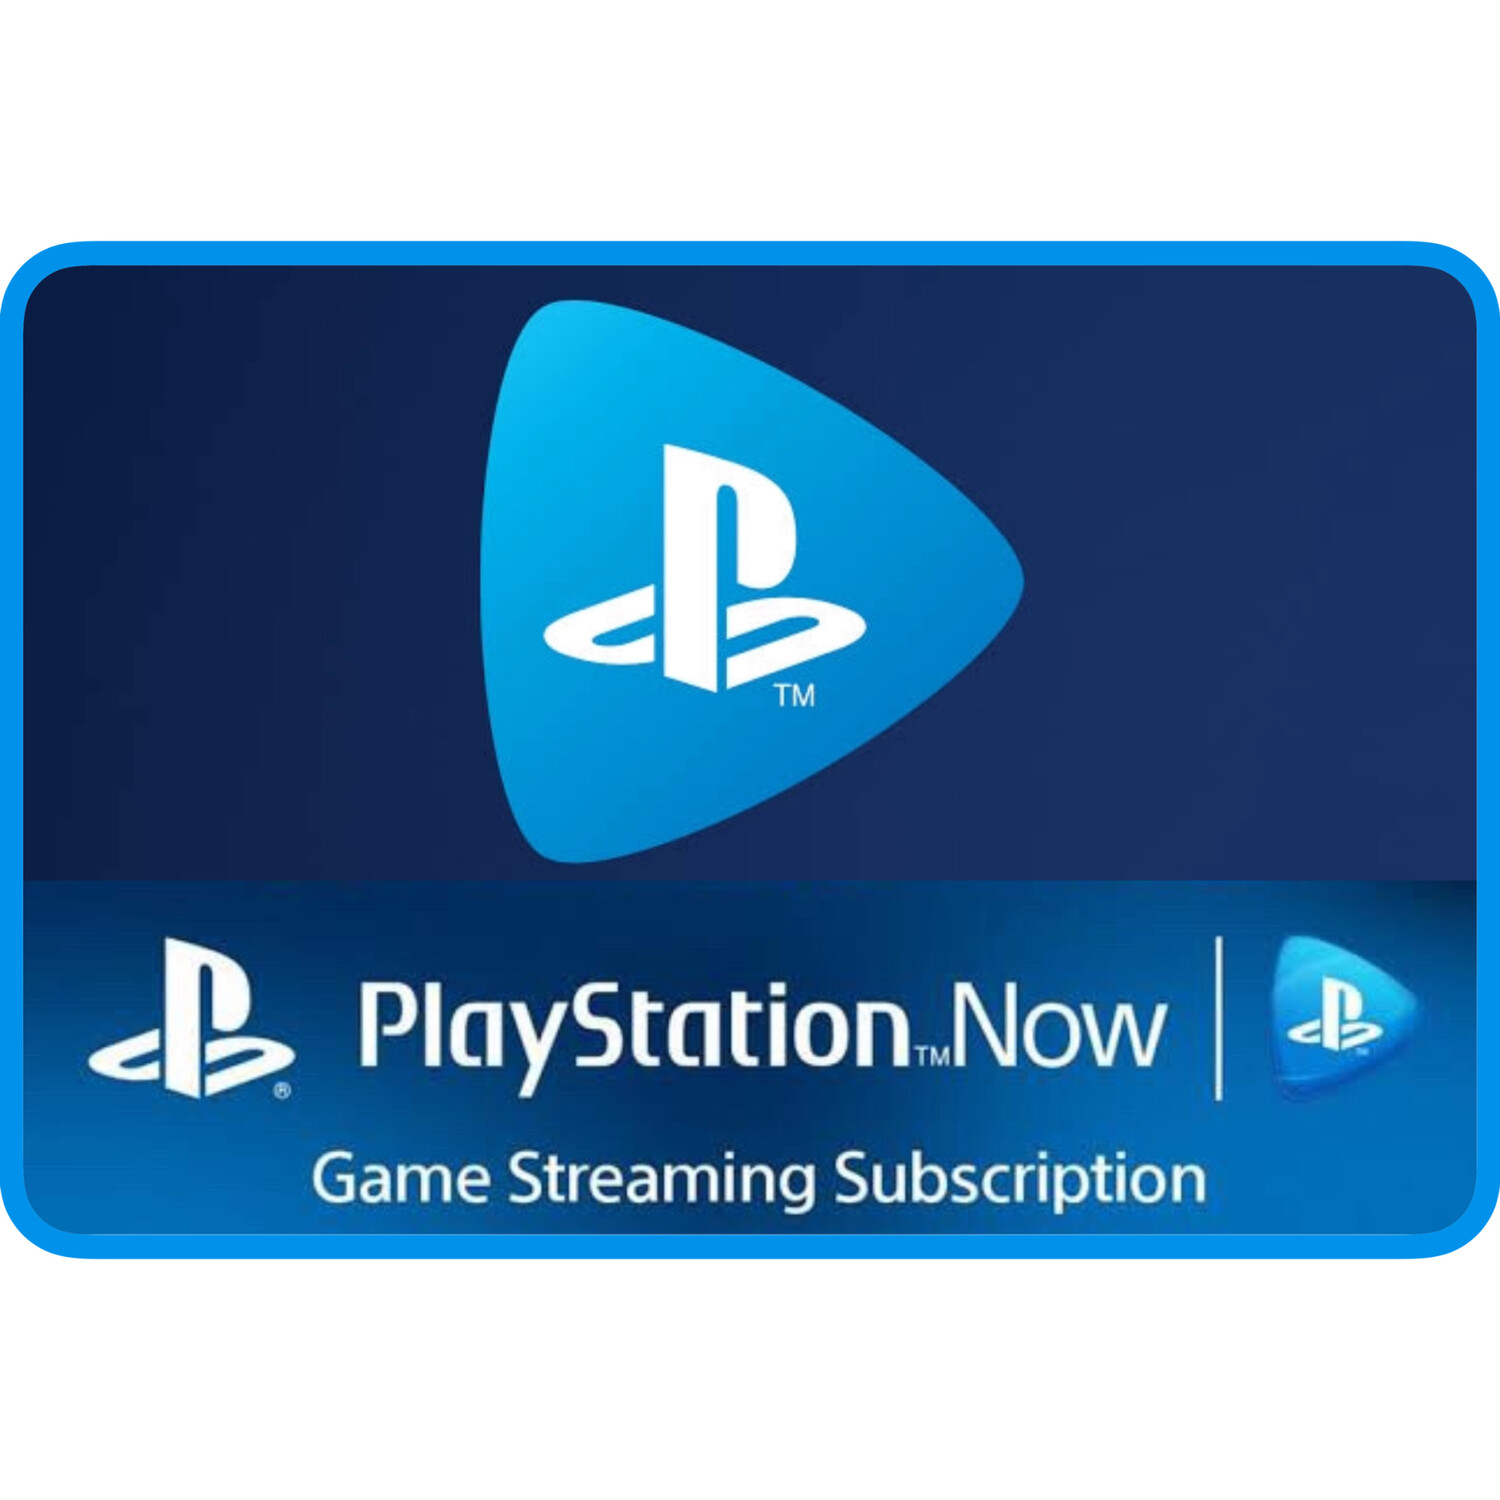 Playstation Now (PSN Now) USA Subscription